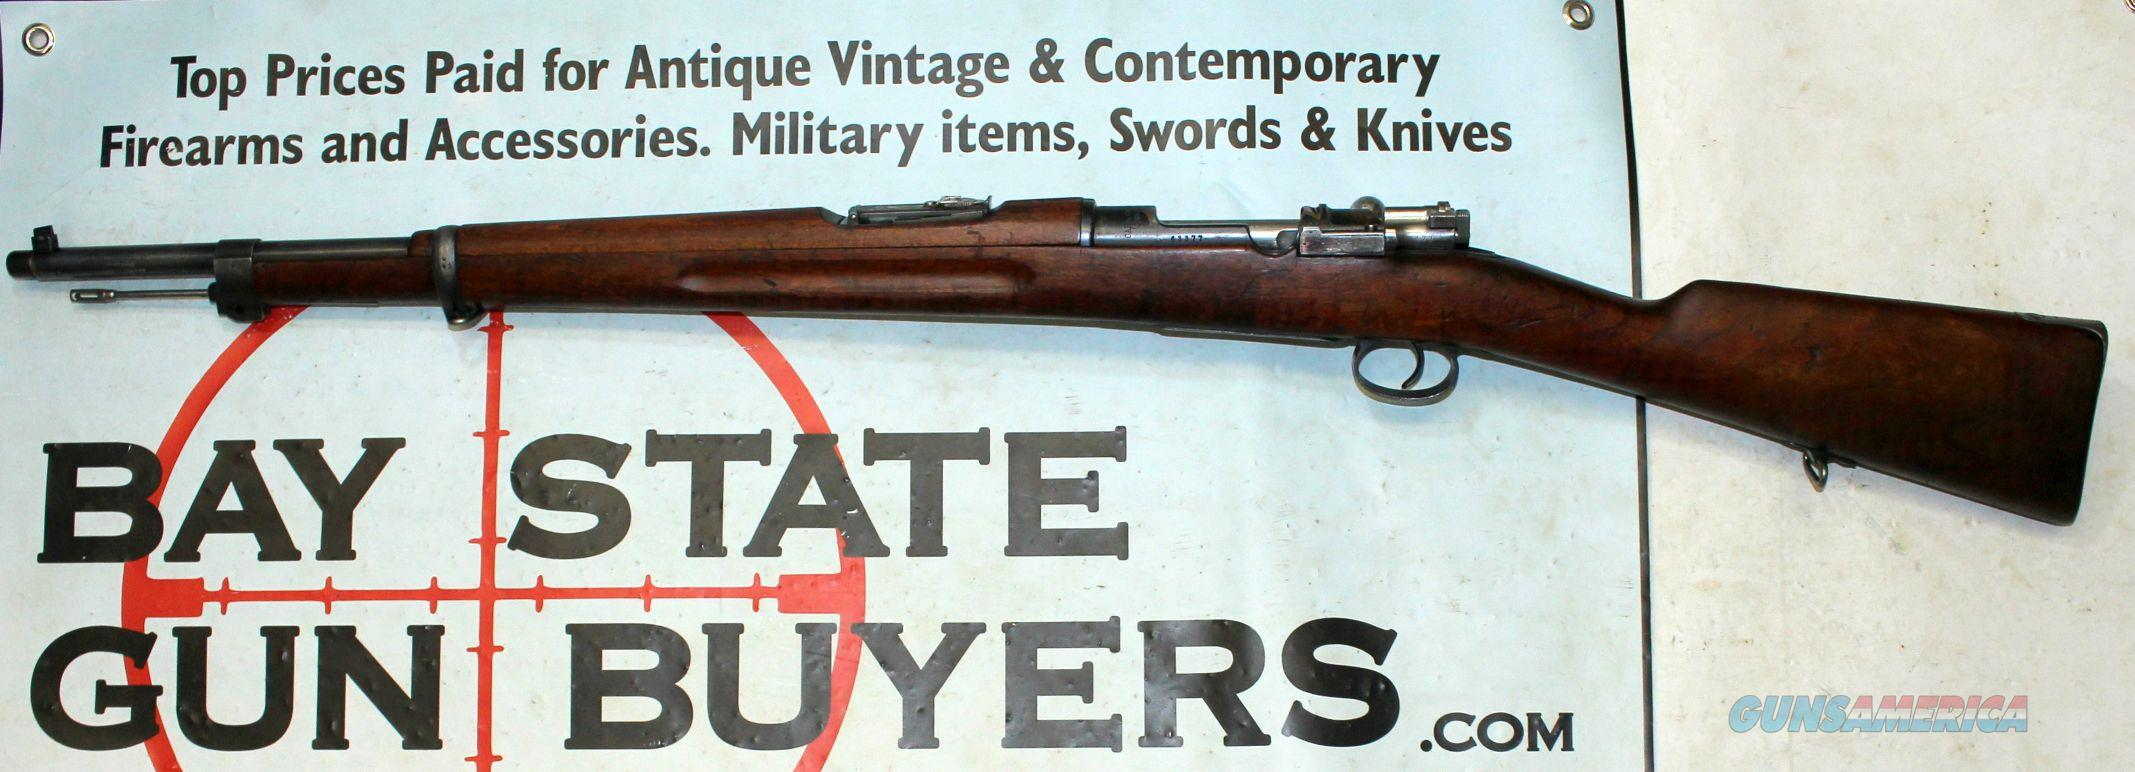 Carl Gustafs Stads SWEDISH MAUSER M/96 bolt action rifle 6.5x55mm - COLLECTIBLE EXAMPLE  Guns > Rifles > Military Misc. Rifles Non-US > Other